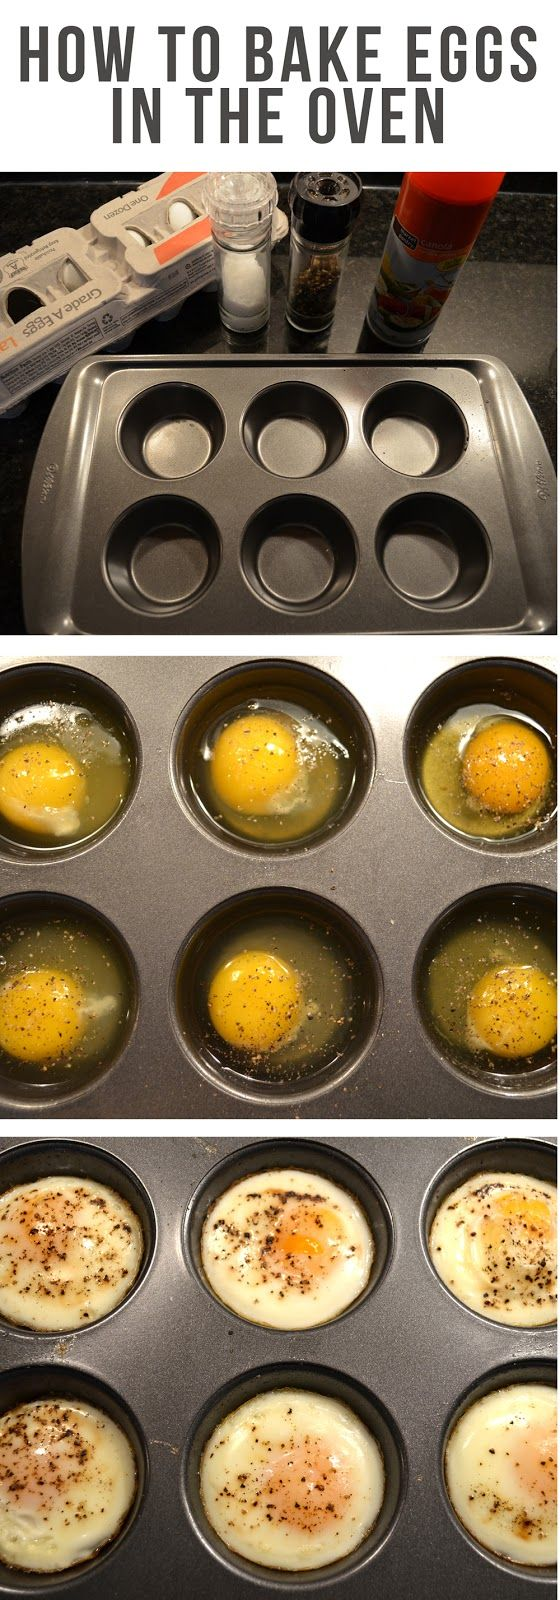 Set your oven to 350F (180C), grease a muffin tin with non stick cooking spray a